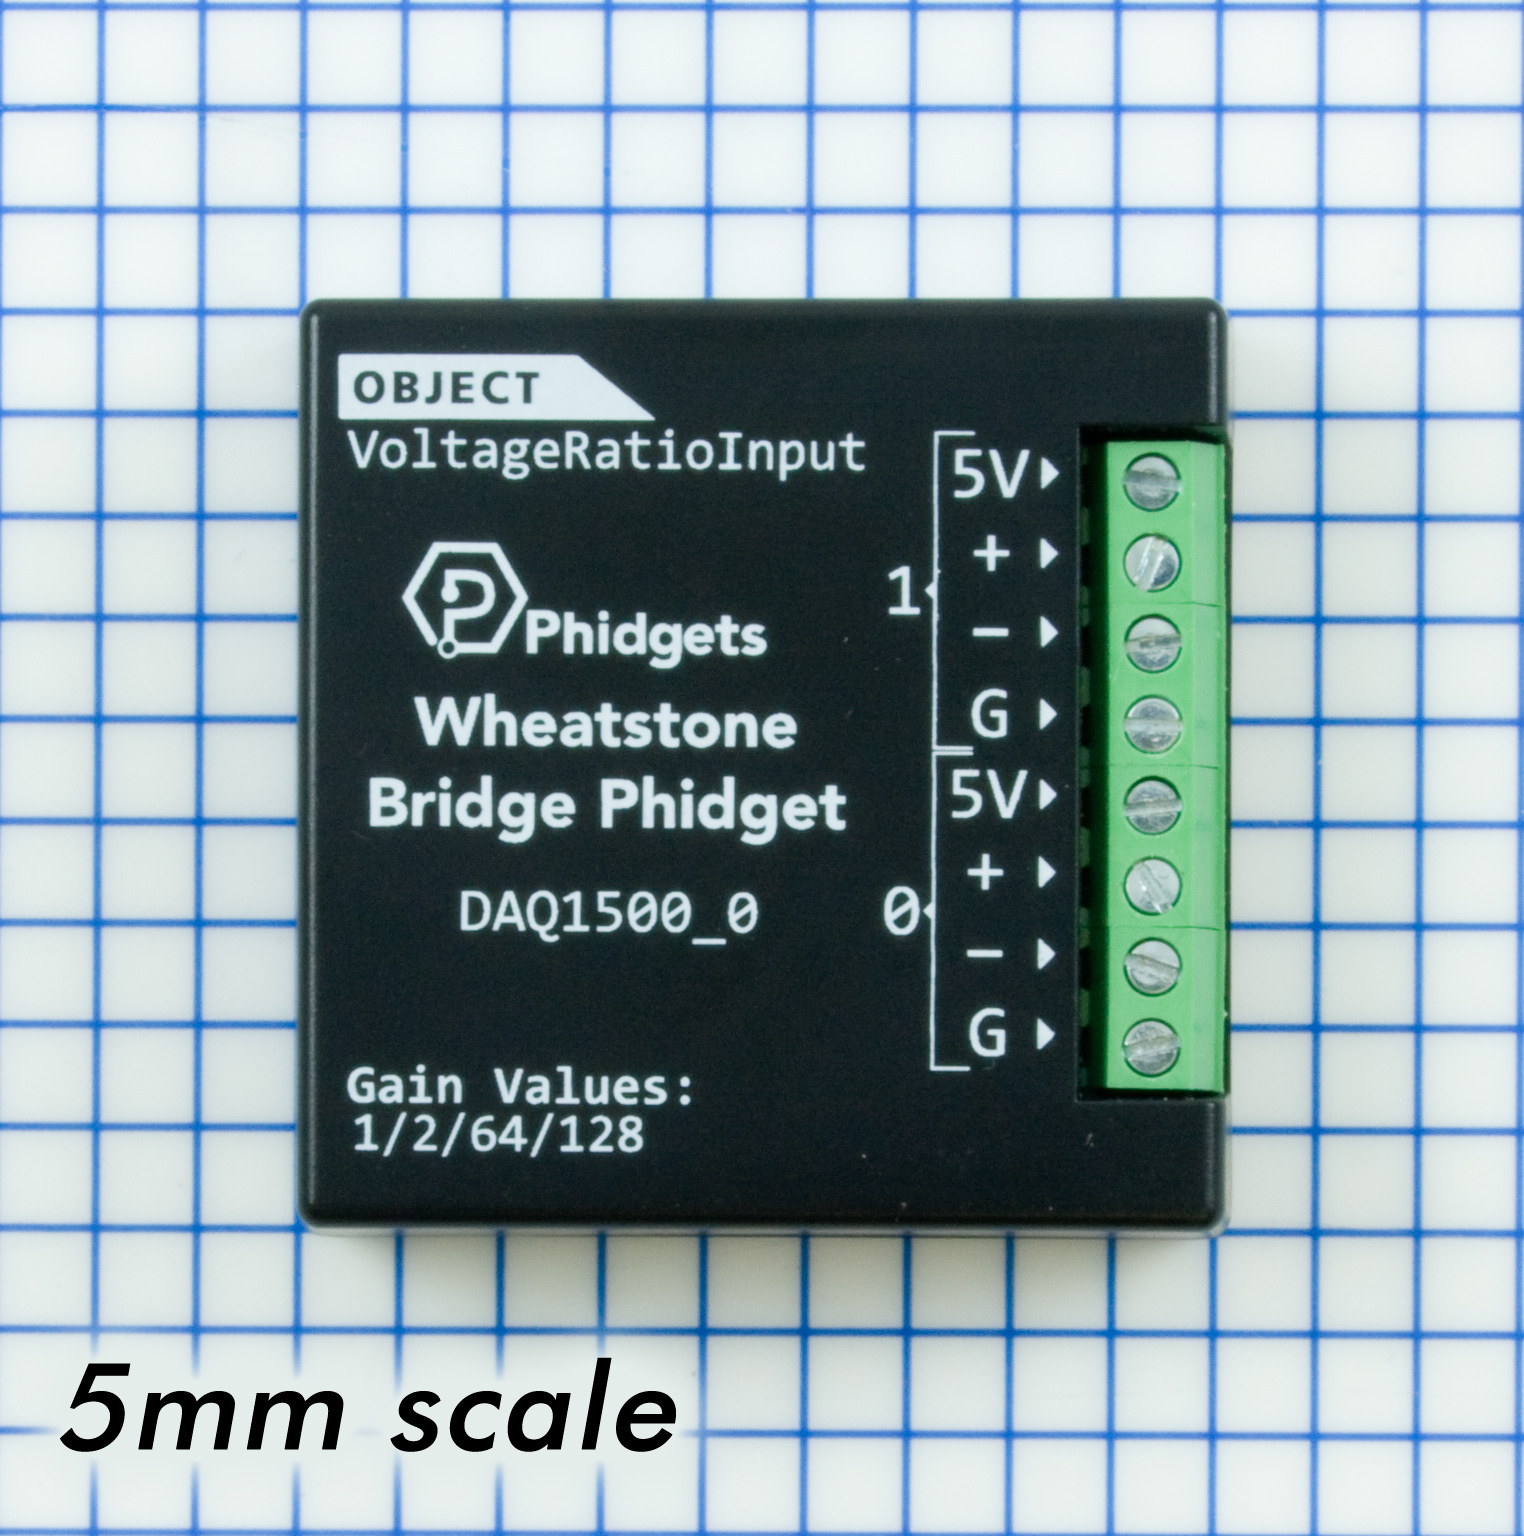 Wheatstone Bridge Phidget Daq1500 0 At Phidgets Wiring 2 12 Volt Batteries Parallel On Interface Load Cell Scale